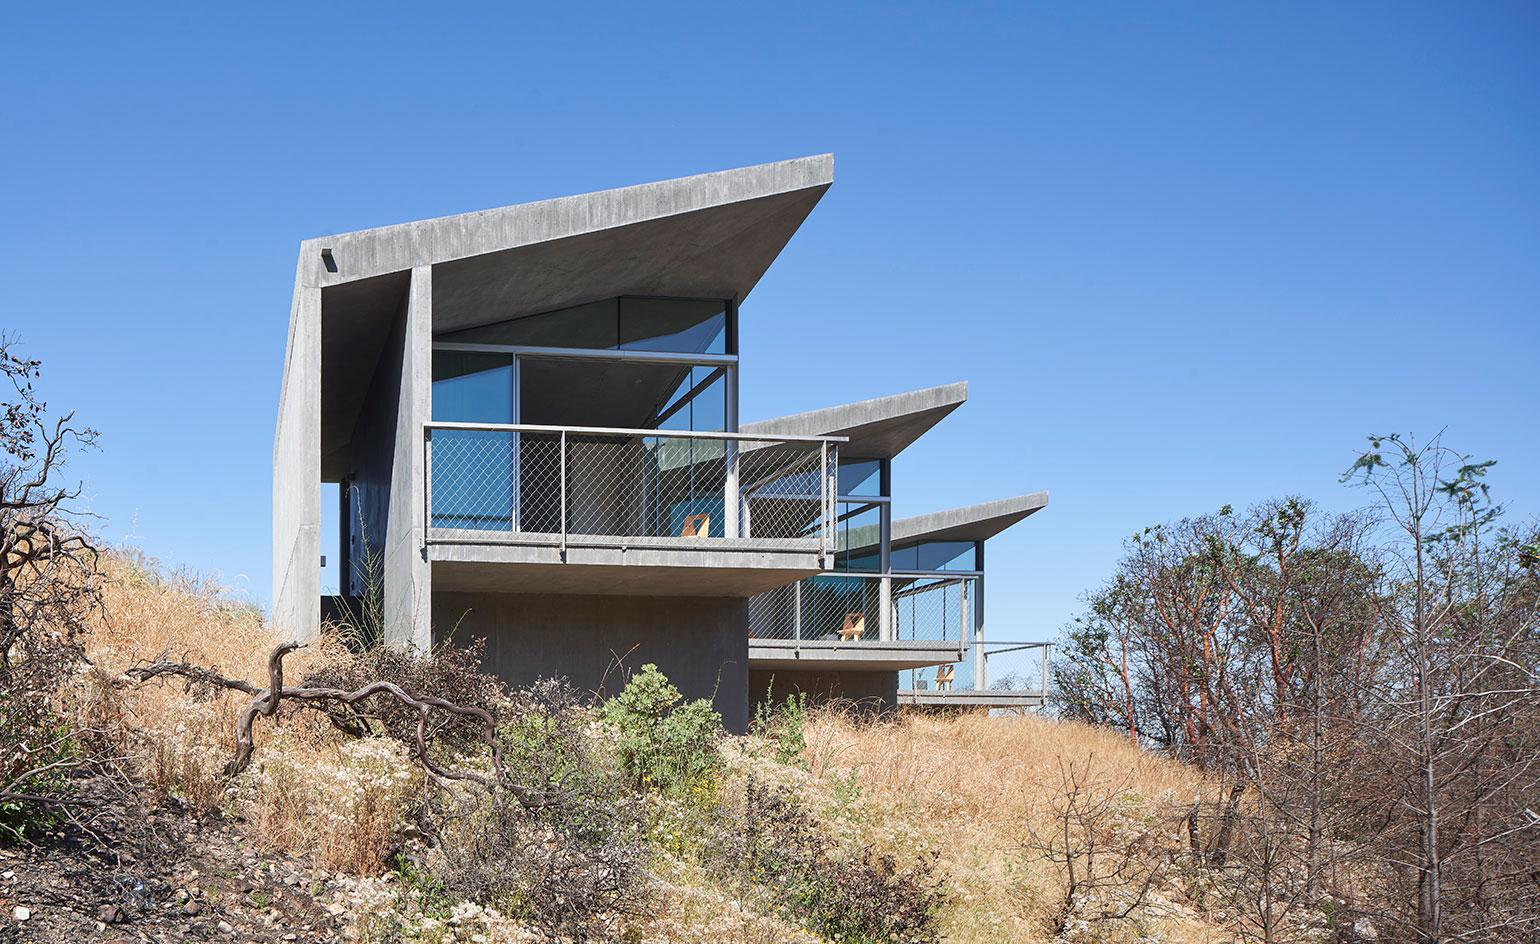 Mork-Ulnes Architects' concrete retreat in California is equipped for climate change